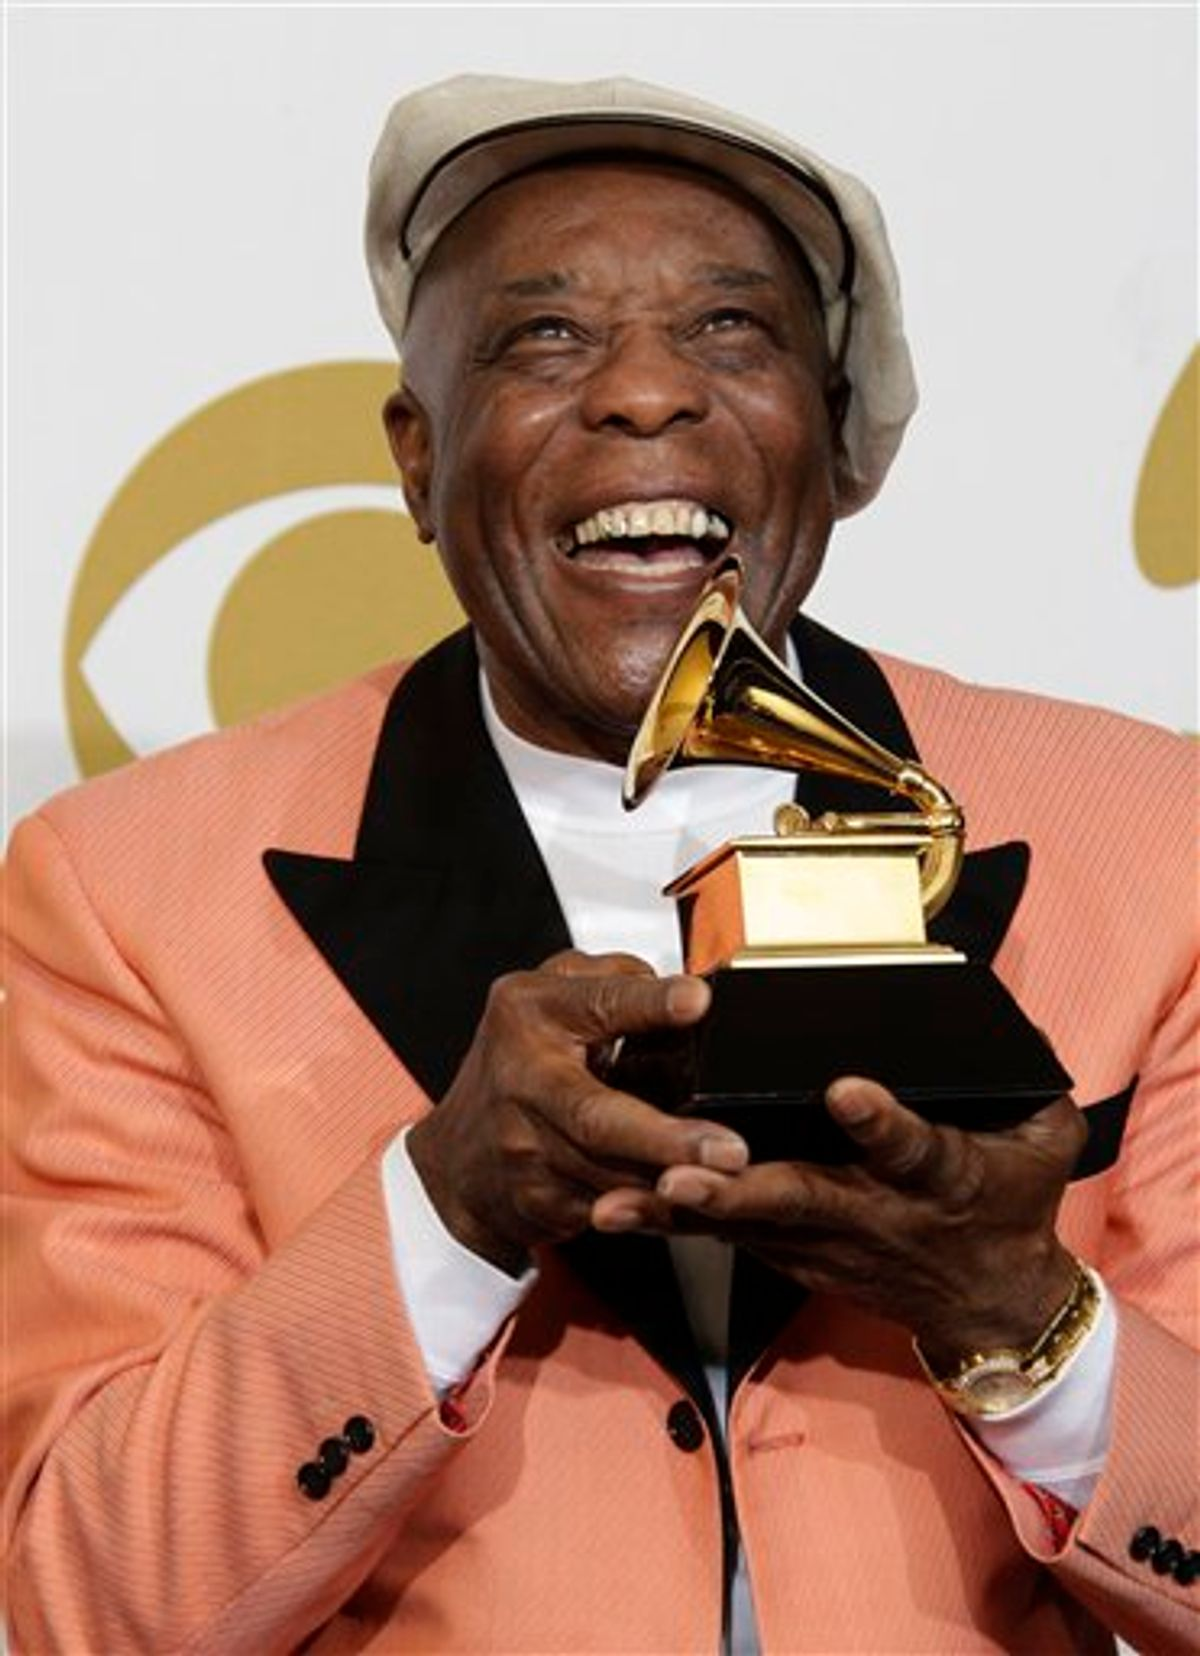 Buddy Guy poses backstage with the award for best contemporary blues album at the 53rd annual Grammy Awards on Sunday, Feb. 13, 2011, in Los Angeles. (AP Photo/Jae C. Hong) (AP)